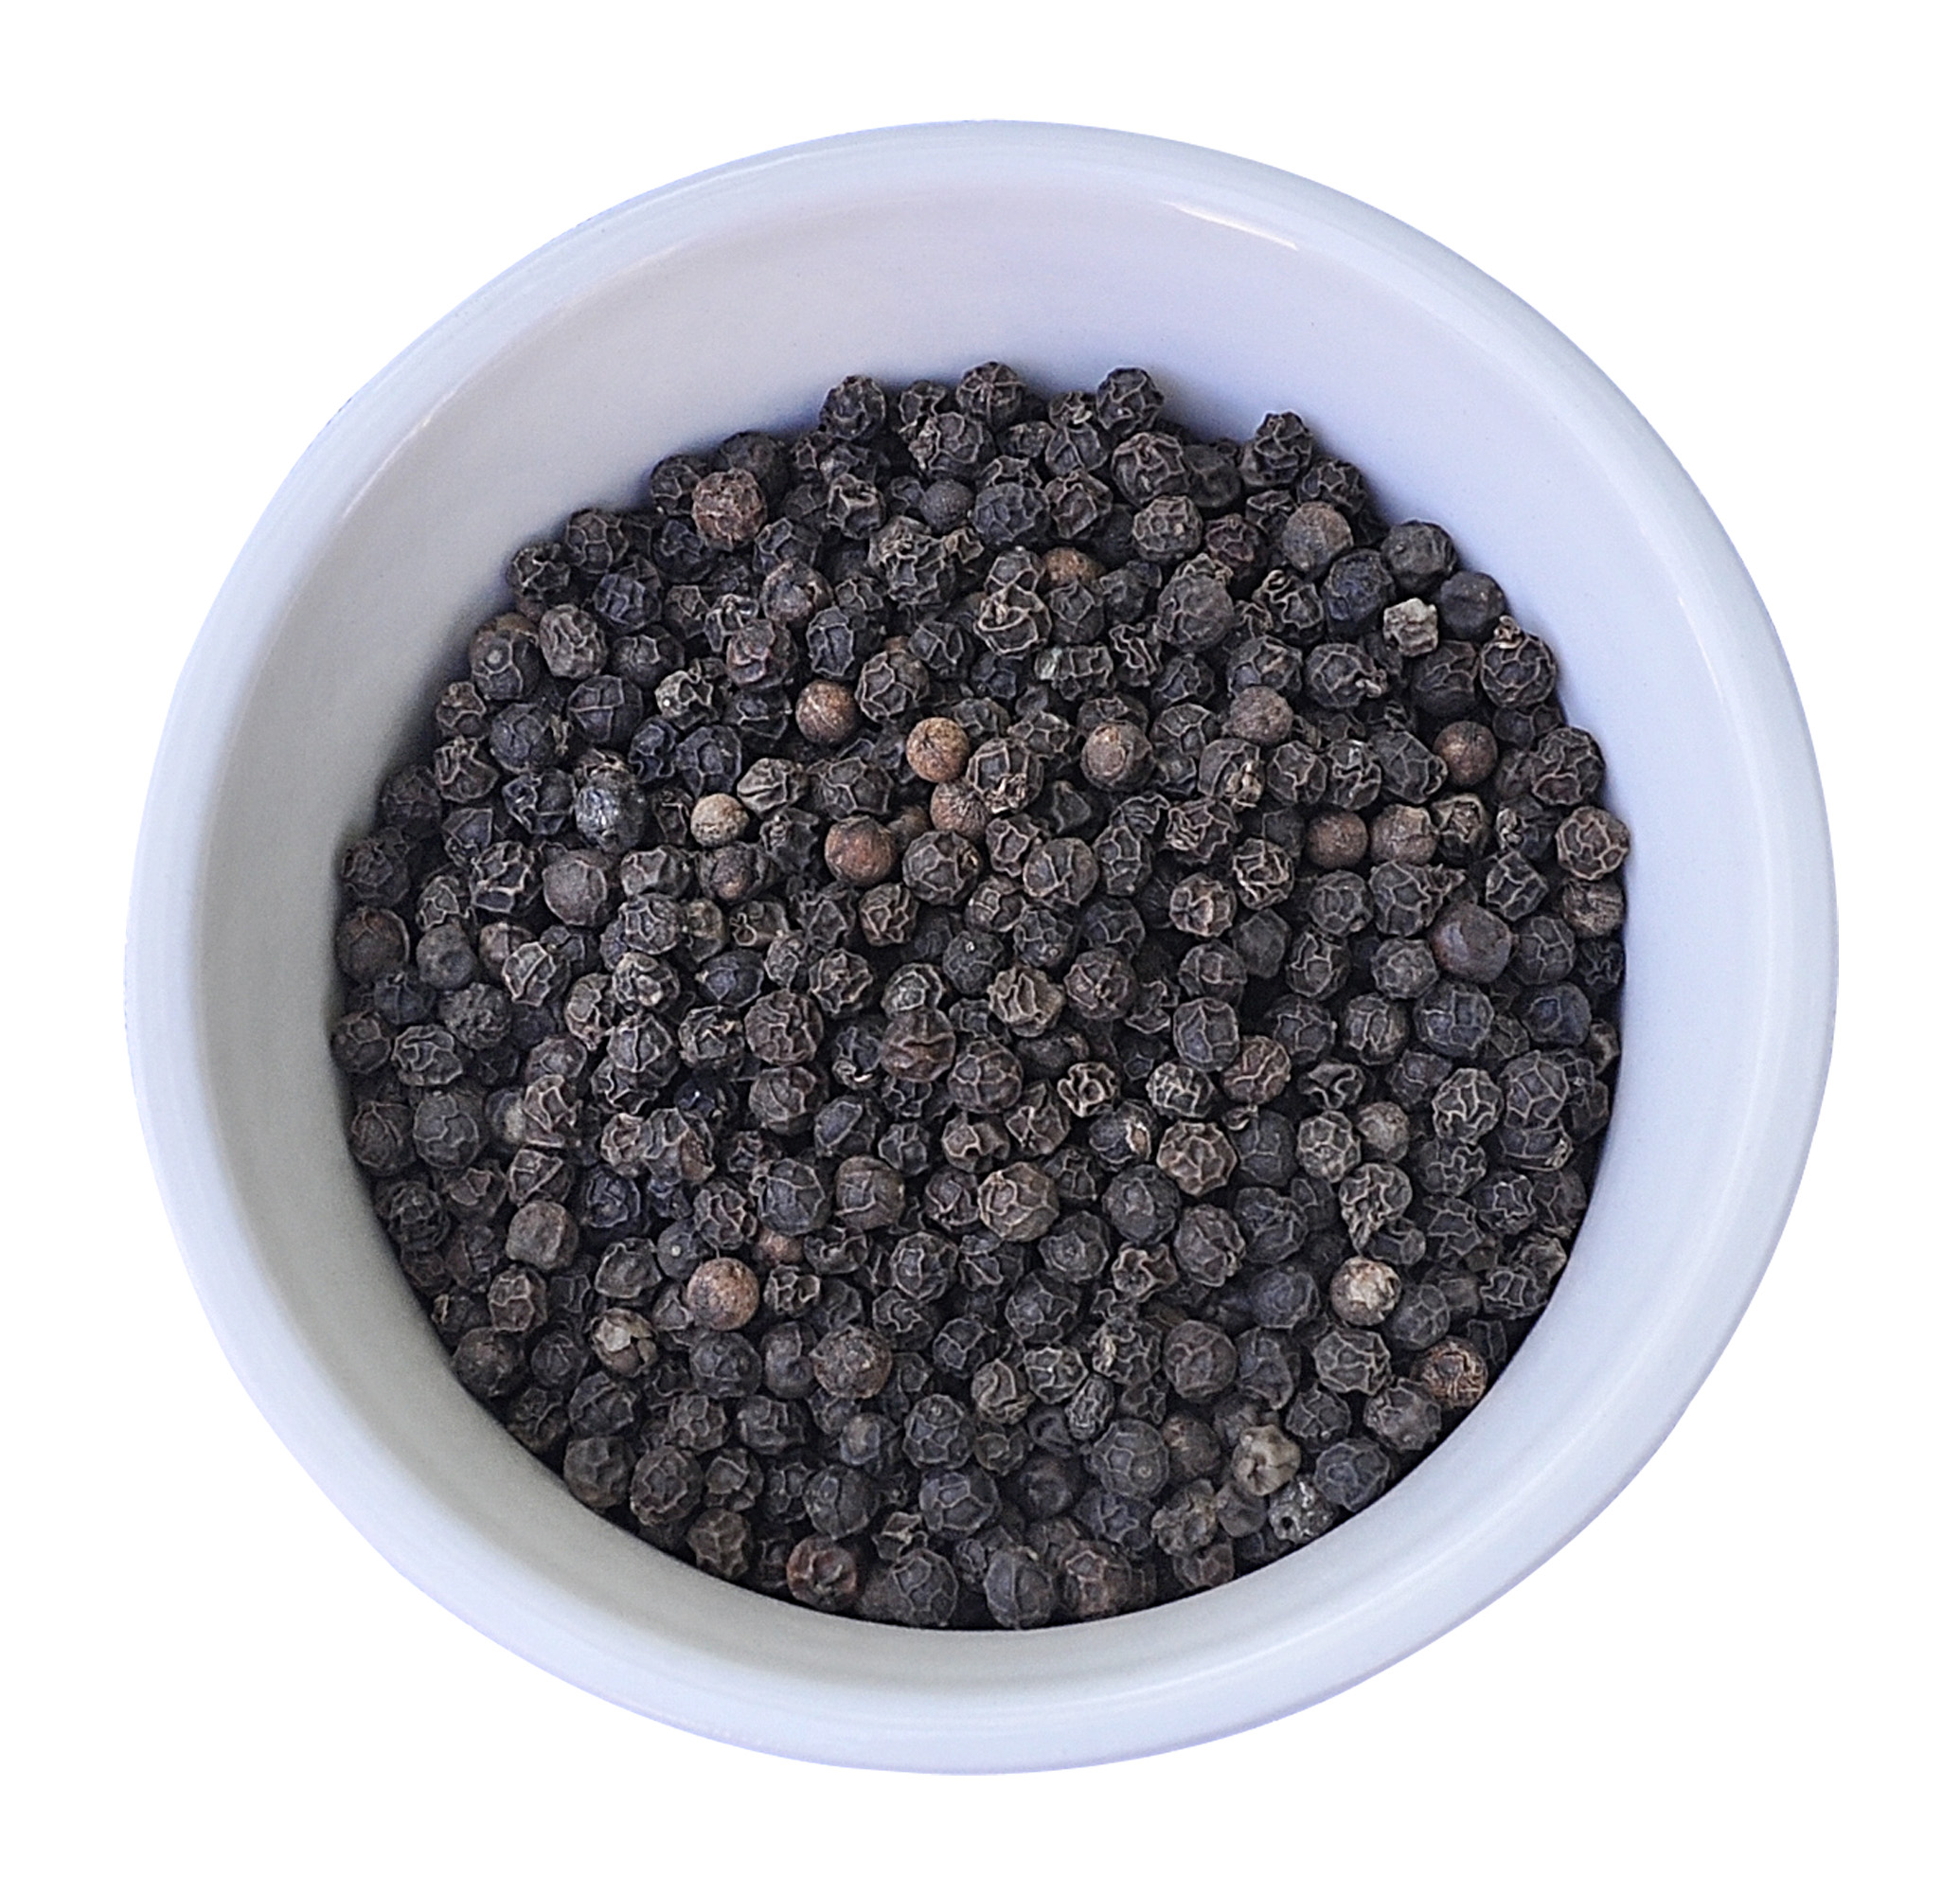 Black Pepper has many benefits. It helps in digestion, and is also known to have anti-oxidant and anti-bacterial properties.